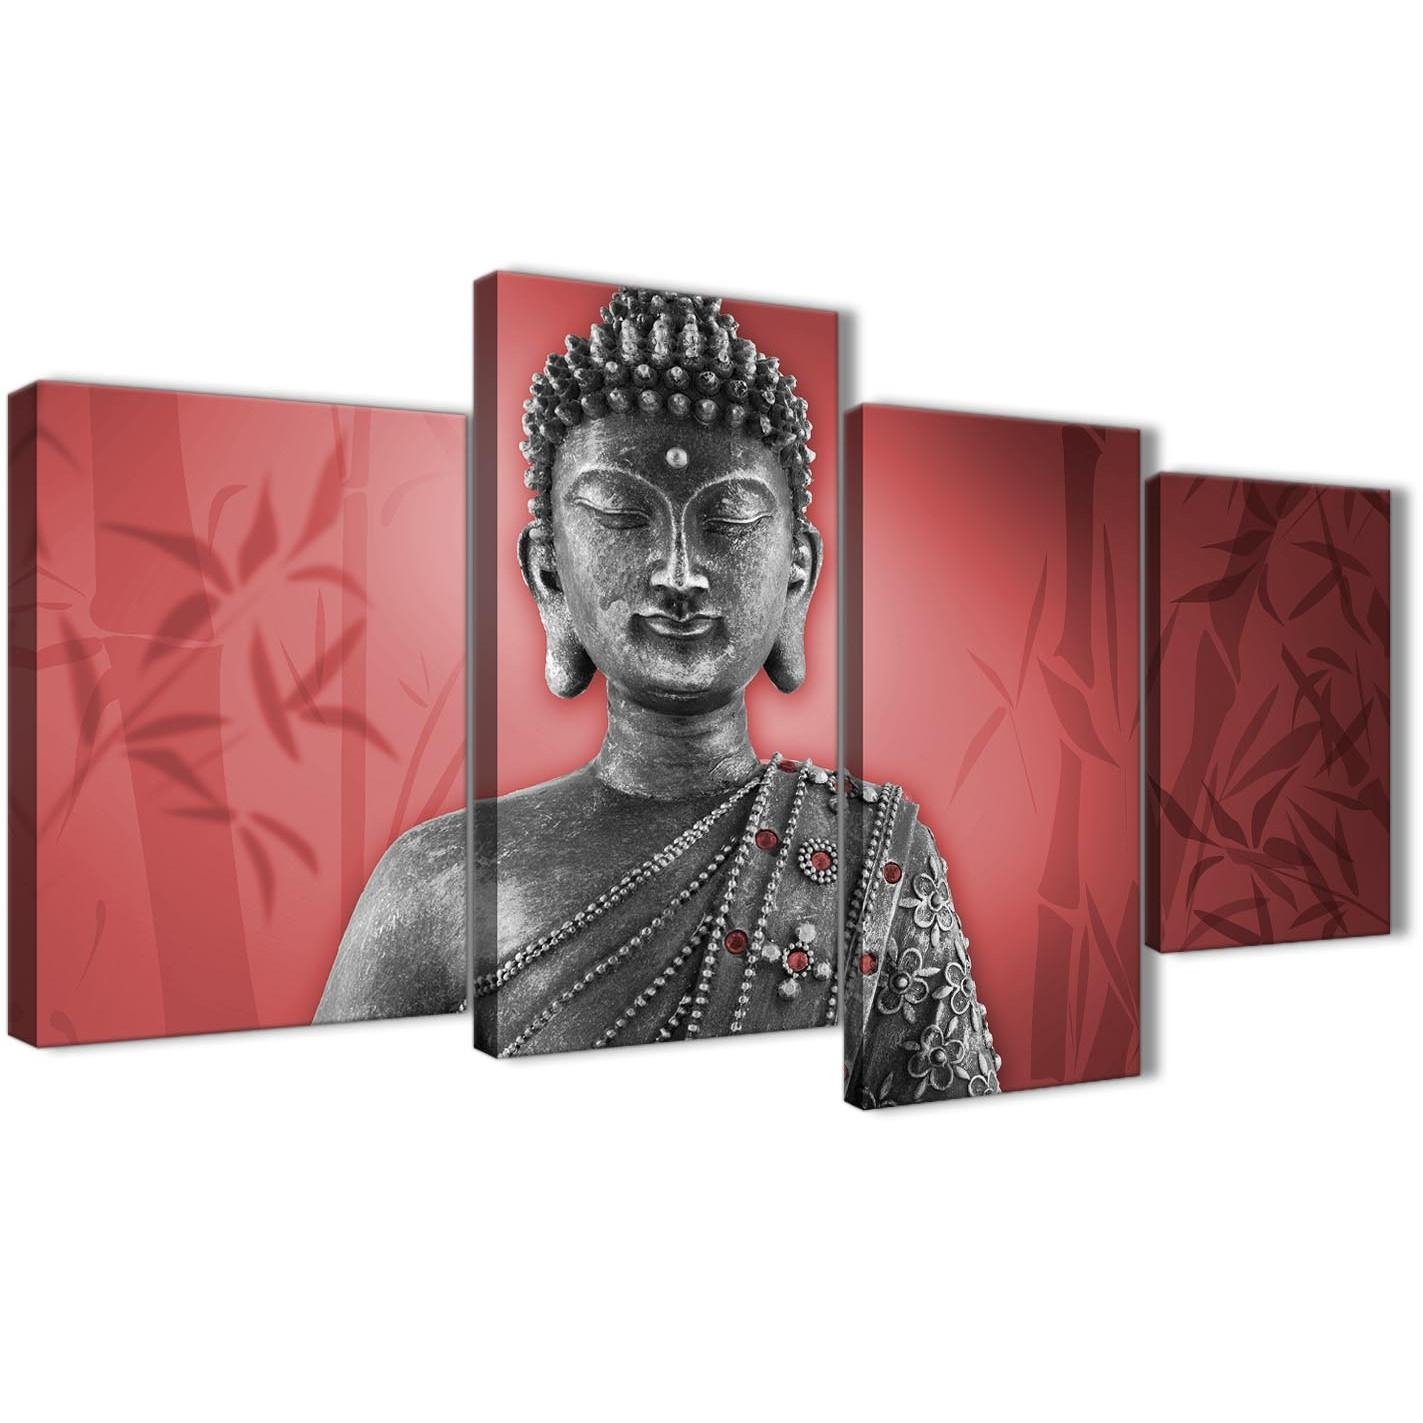 Large Red And Grey Silver Canvas Art Prints Of Buddha – Split 4 Intended For 4 Piece Wall Art (Image 12 of 19)